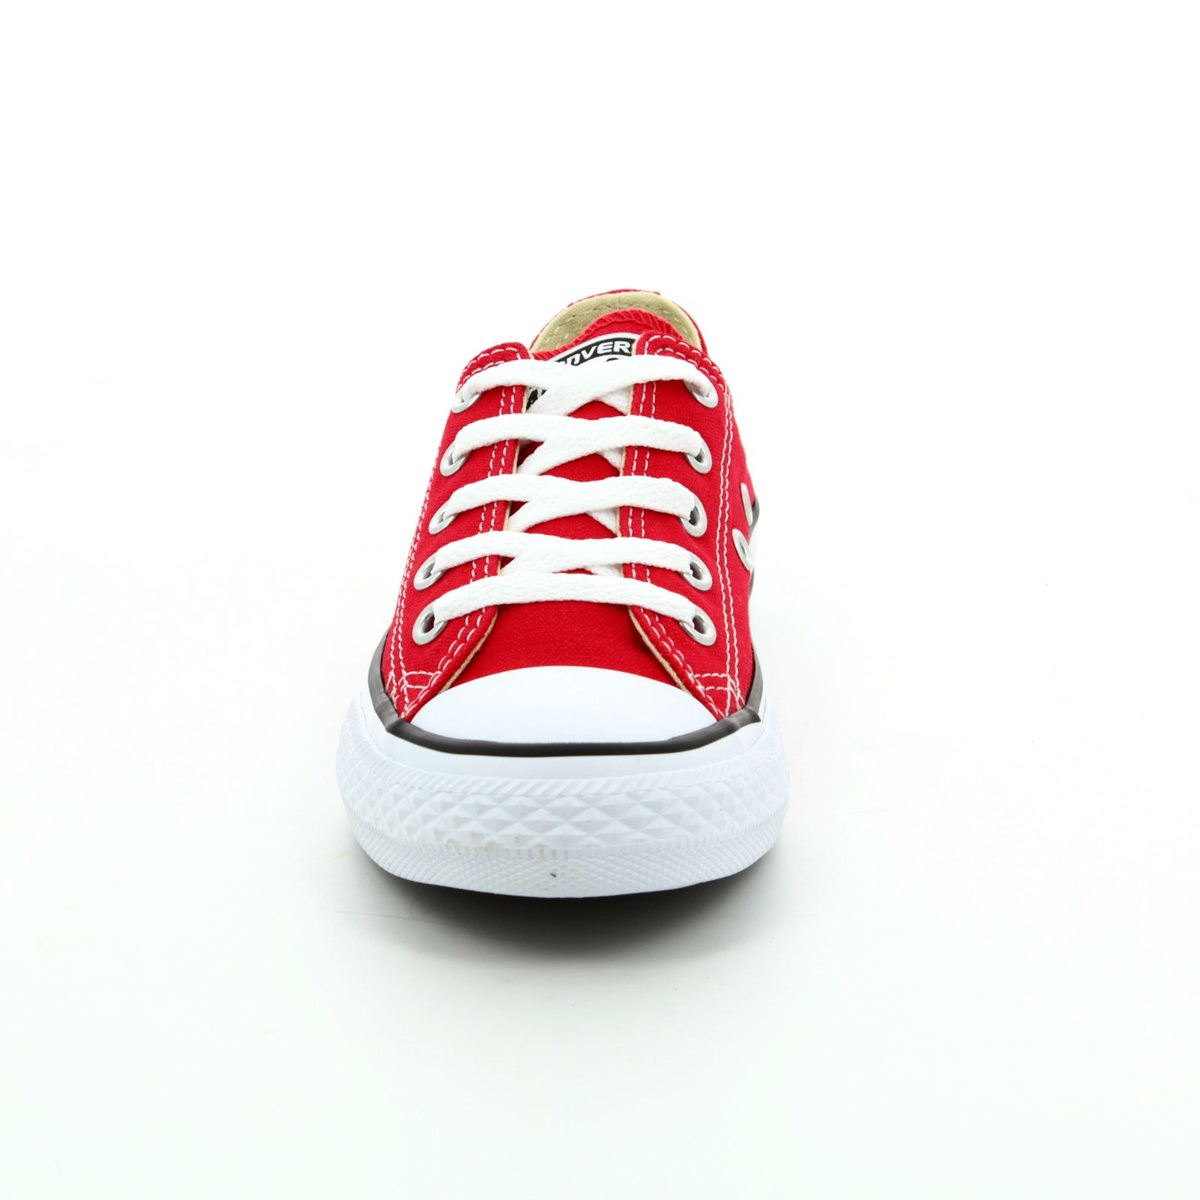 818c077ad94c Converse 3J236C Chuck Taylor All Star OX Youth Red Kids Trainers